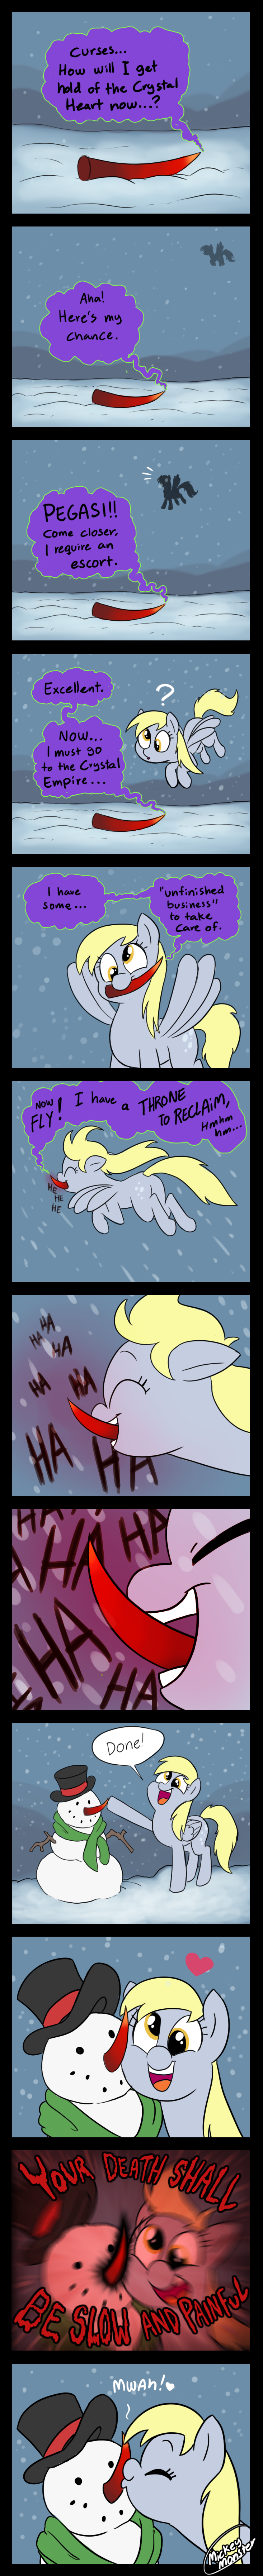 sombra derpy hooves comic - 8967491328